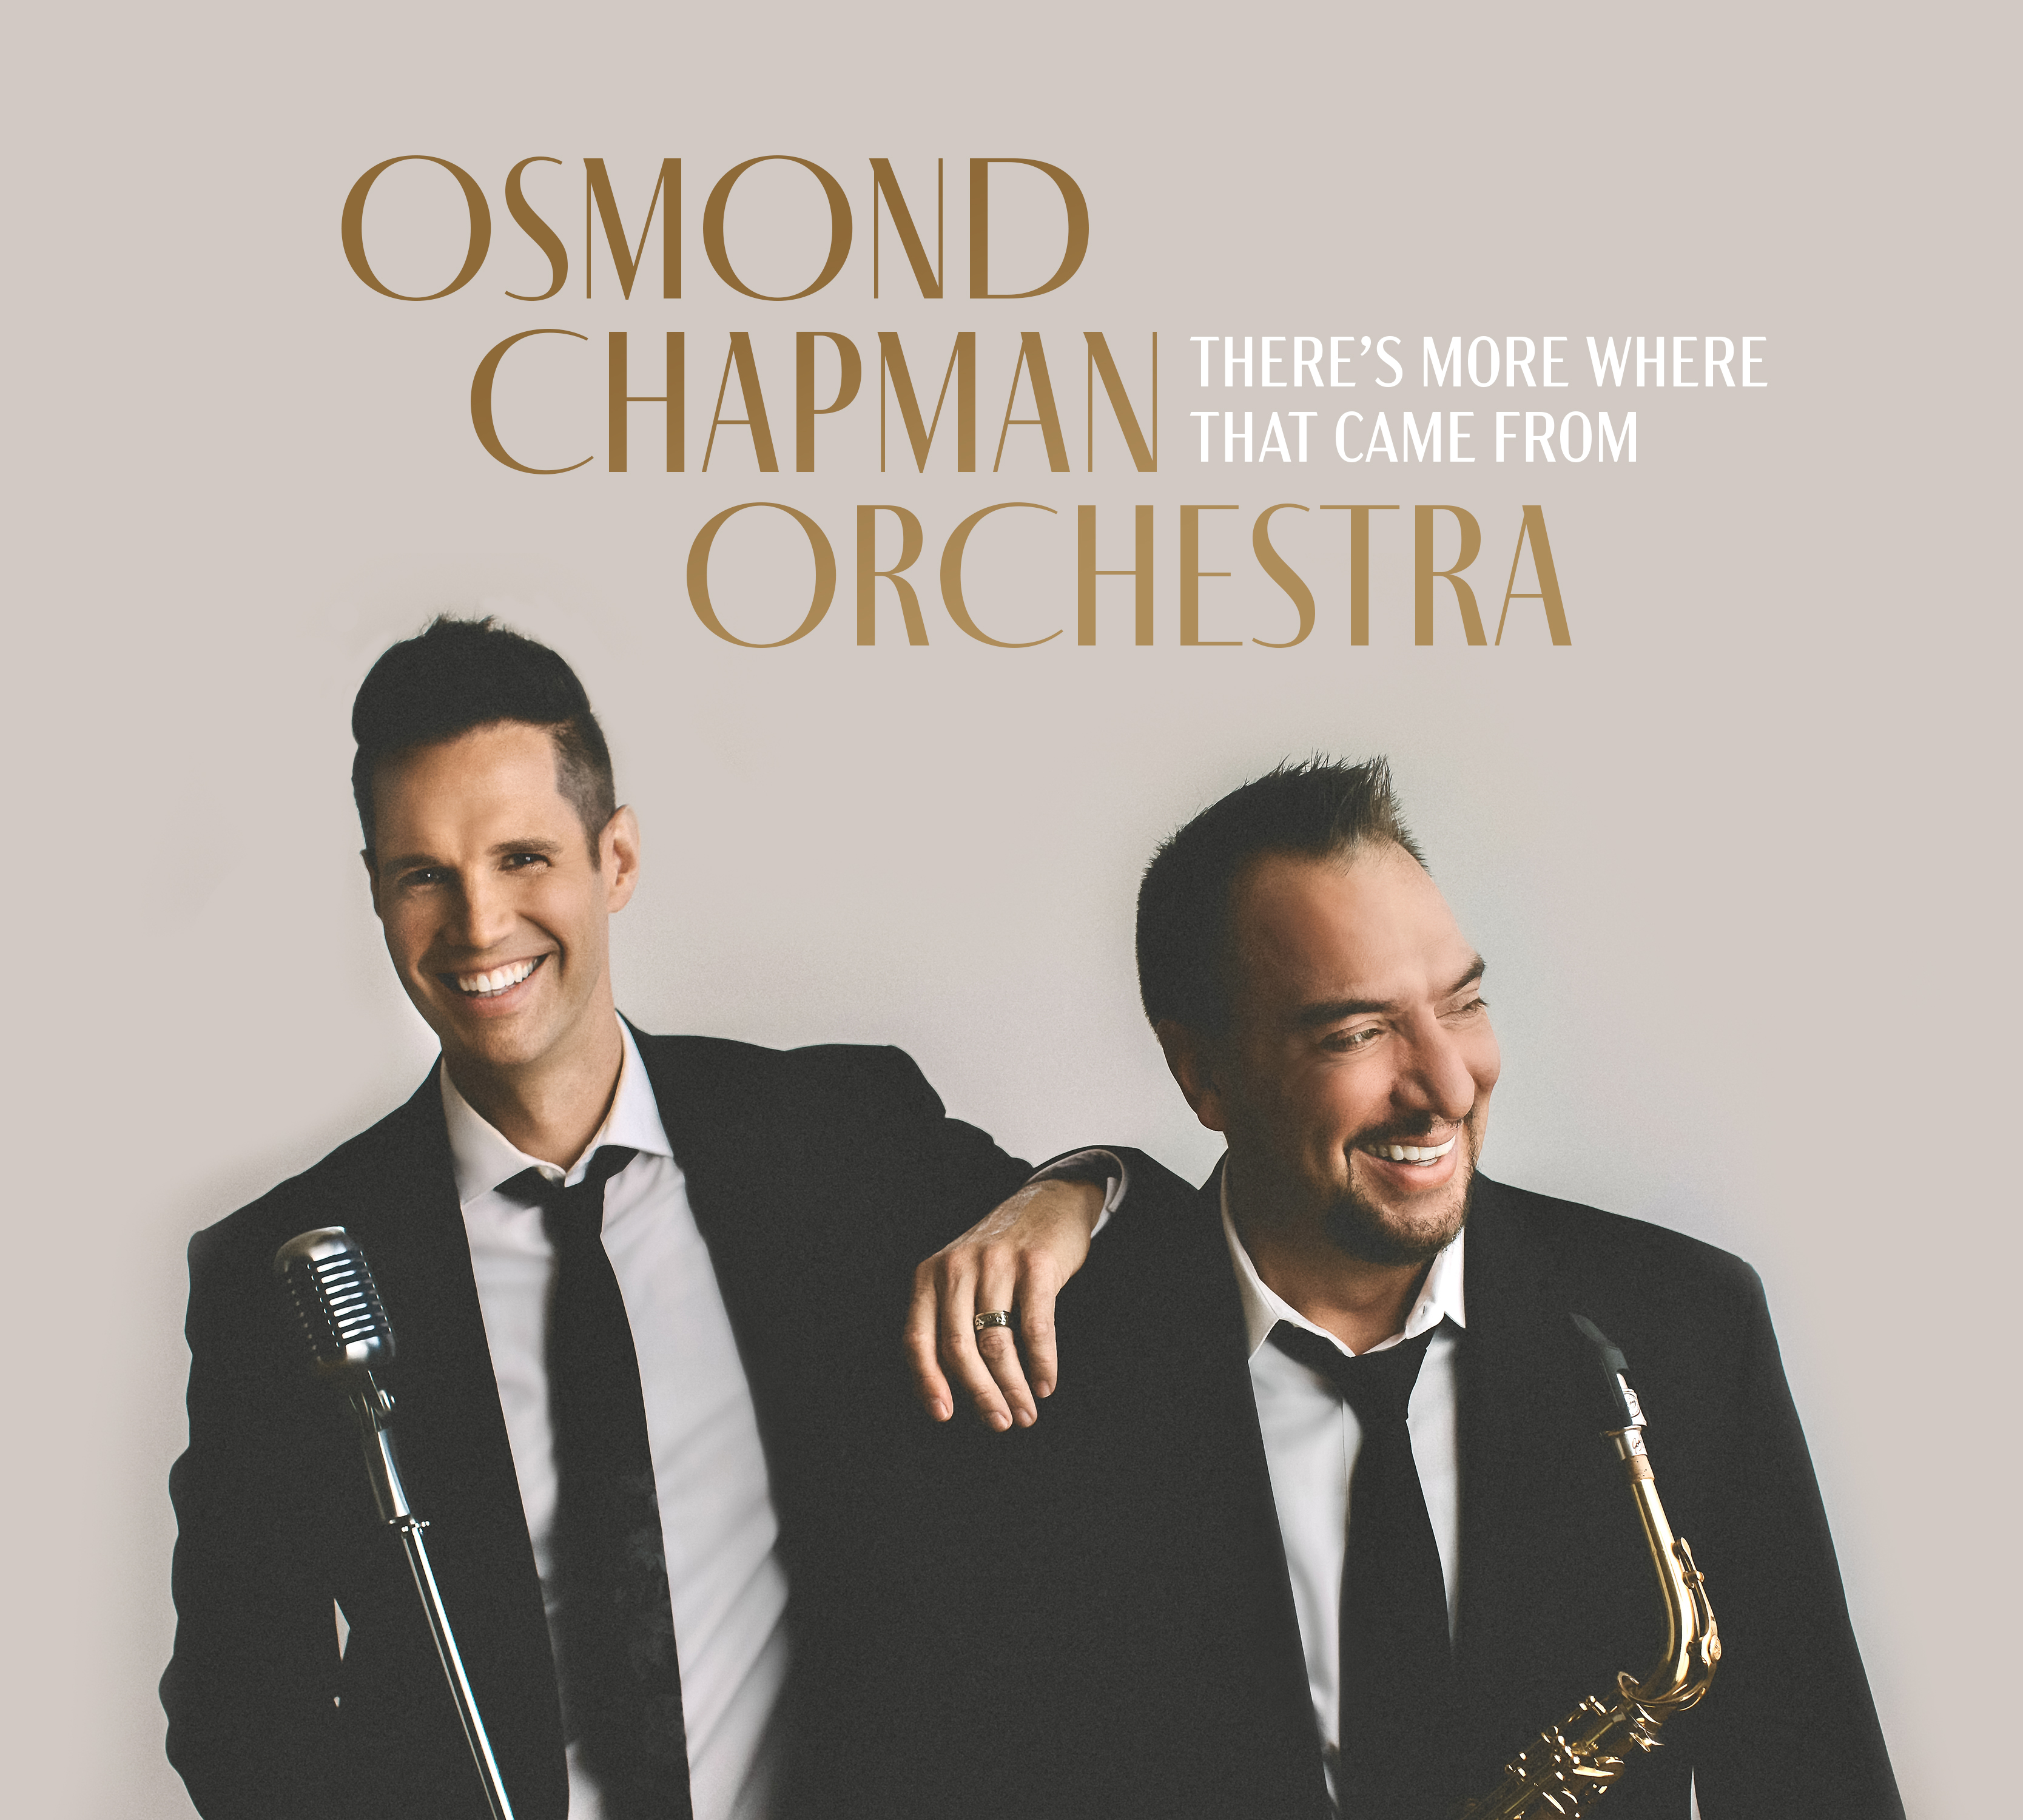 Cover Photo for Osmond Chapman Orchestra new album More Where That Came From